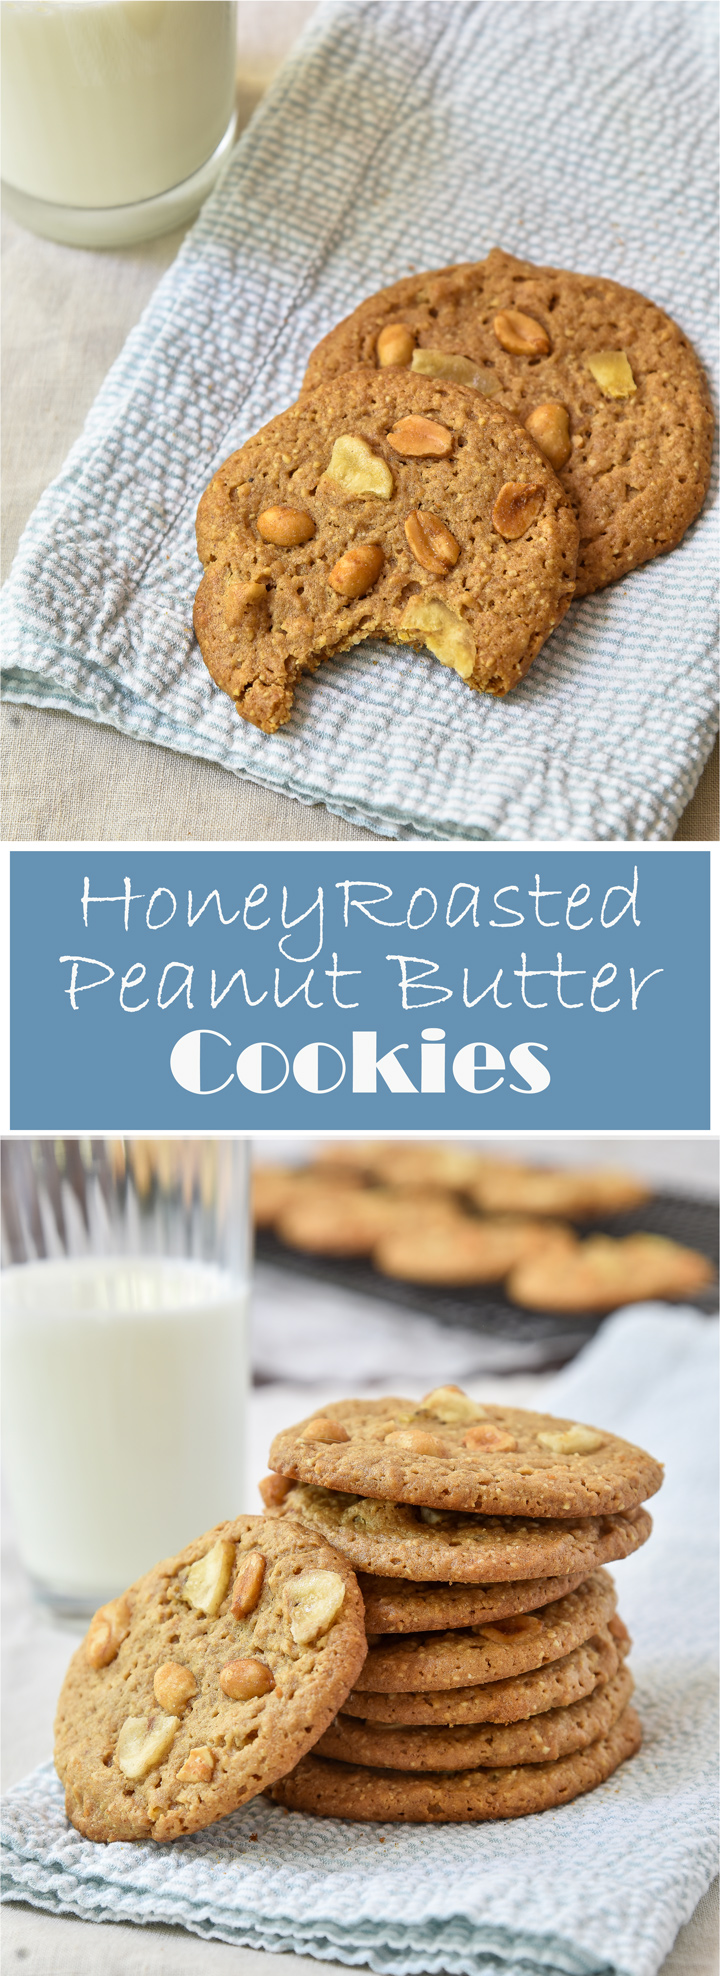 Honey Roasted Peanut Butter Cookies with Bananas. Recipe for peanut butter cookies made with honey roasted peanuts, They are light and full of that warm honey peanut butter flavor topped of with banana chips. Gluten free option available in recipe.